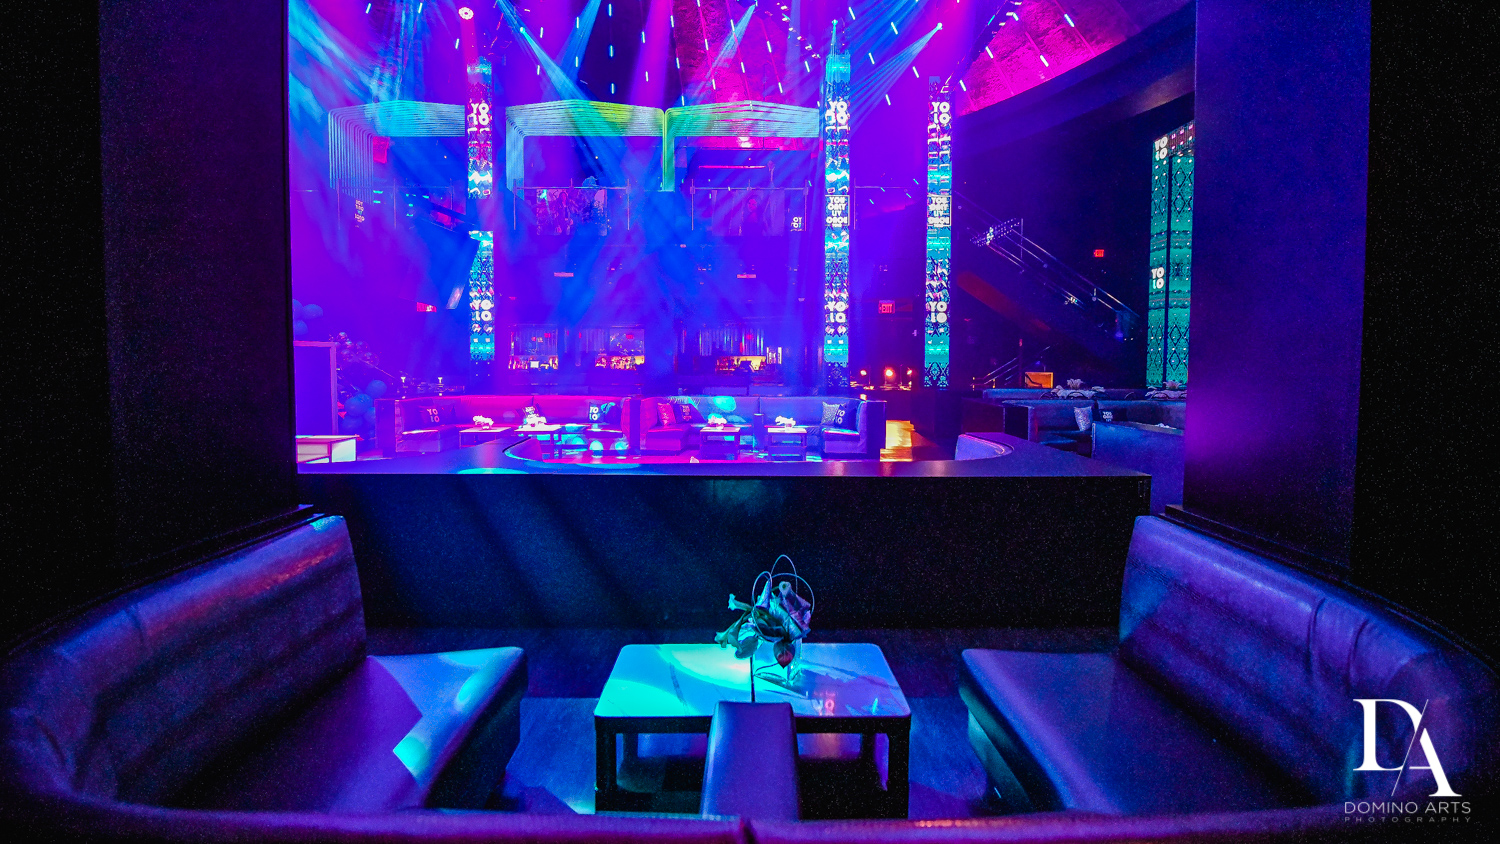 decor at Nightclub Bat Mitzvah at LIV in Fontainebleau Miami by Domino Arts Photography